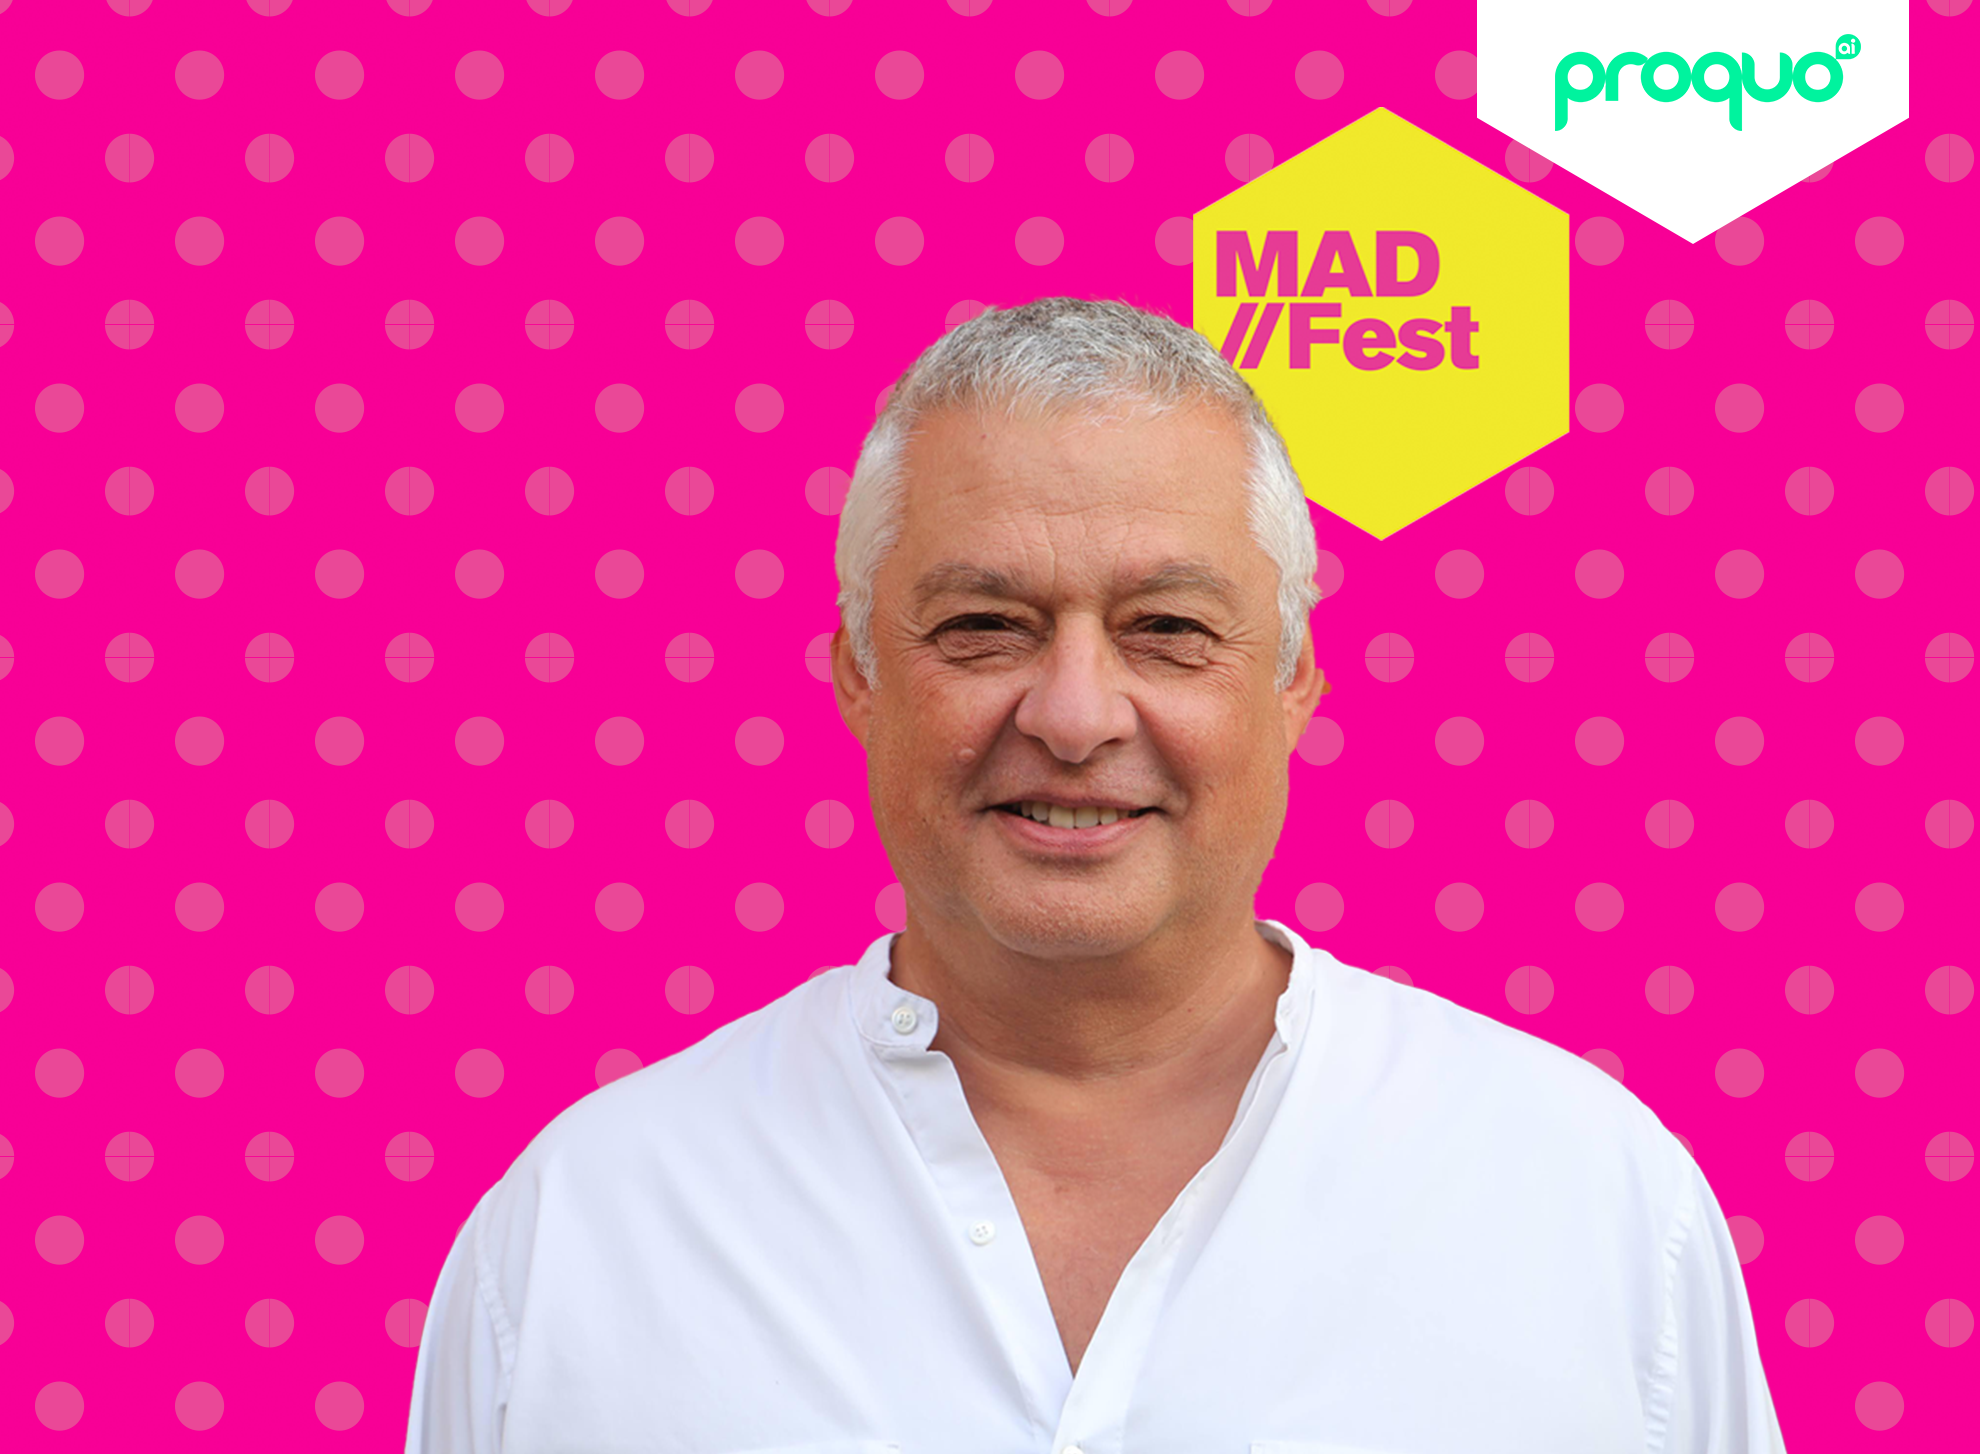 MADFest marketing festival advertisement featuring ProQuo AI's CEO